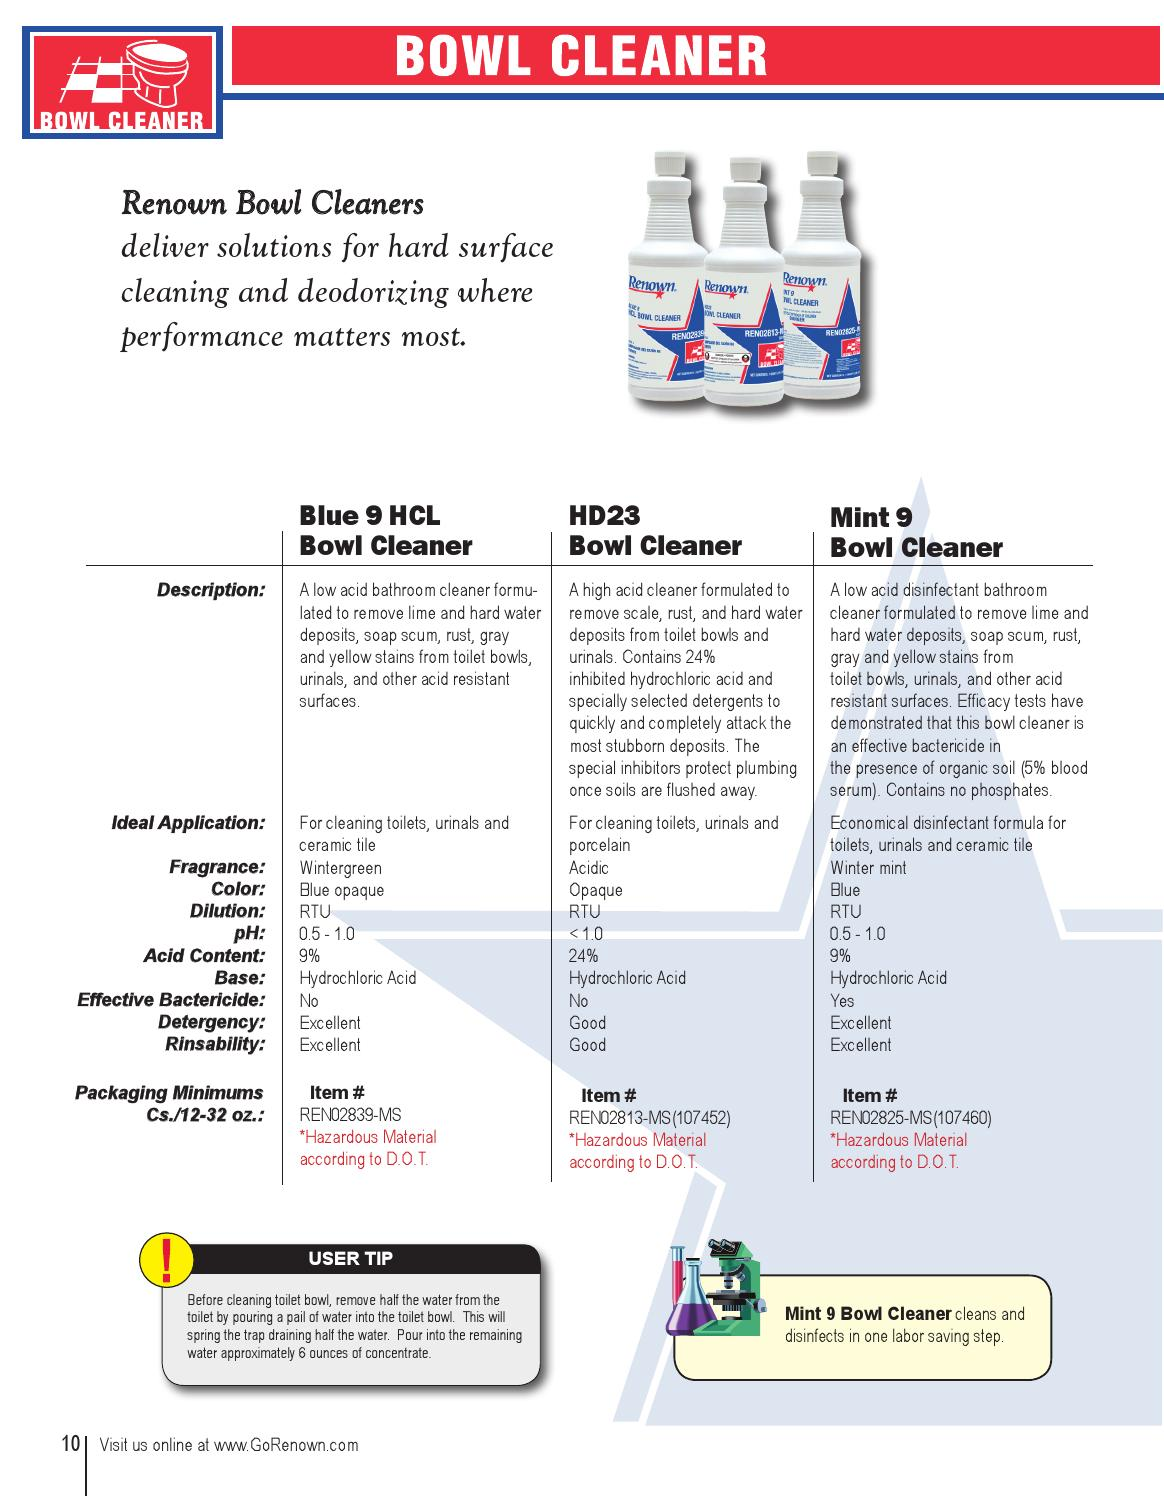 Renown Chemicals Great Products At Great Prices Order